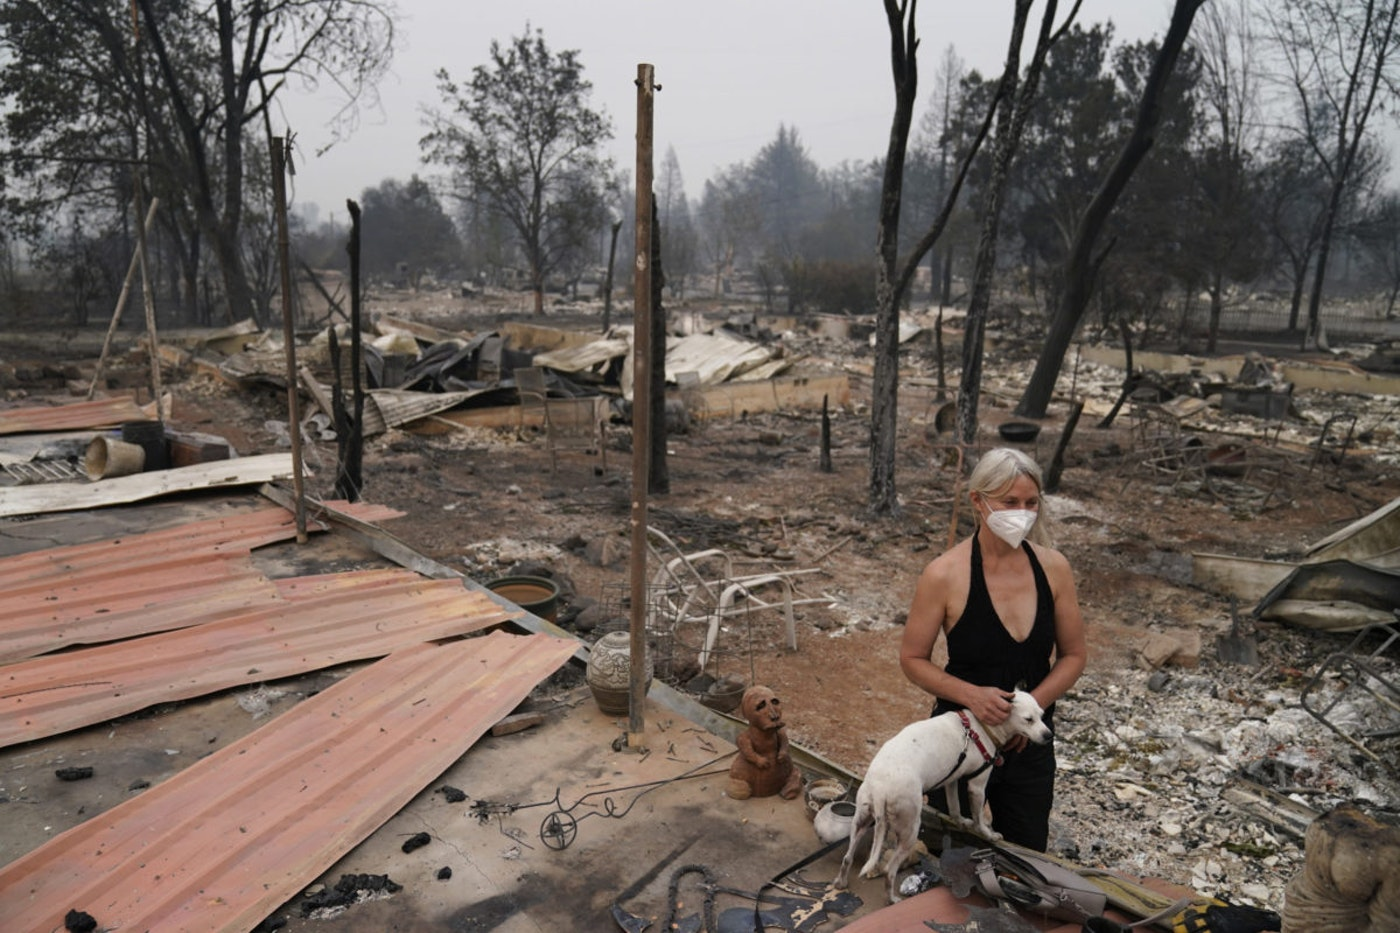 Eden McCarthy pets her dog Hina in the rubble of her home destroyed by the Almeda Fire, Thursday, Sept. 10, 2020, in Talent, Ore. (AP Photo/John Locher)